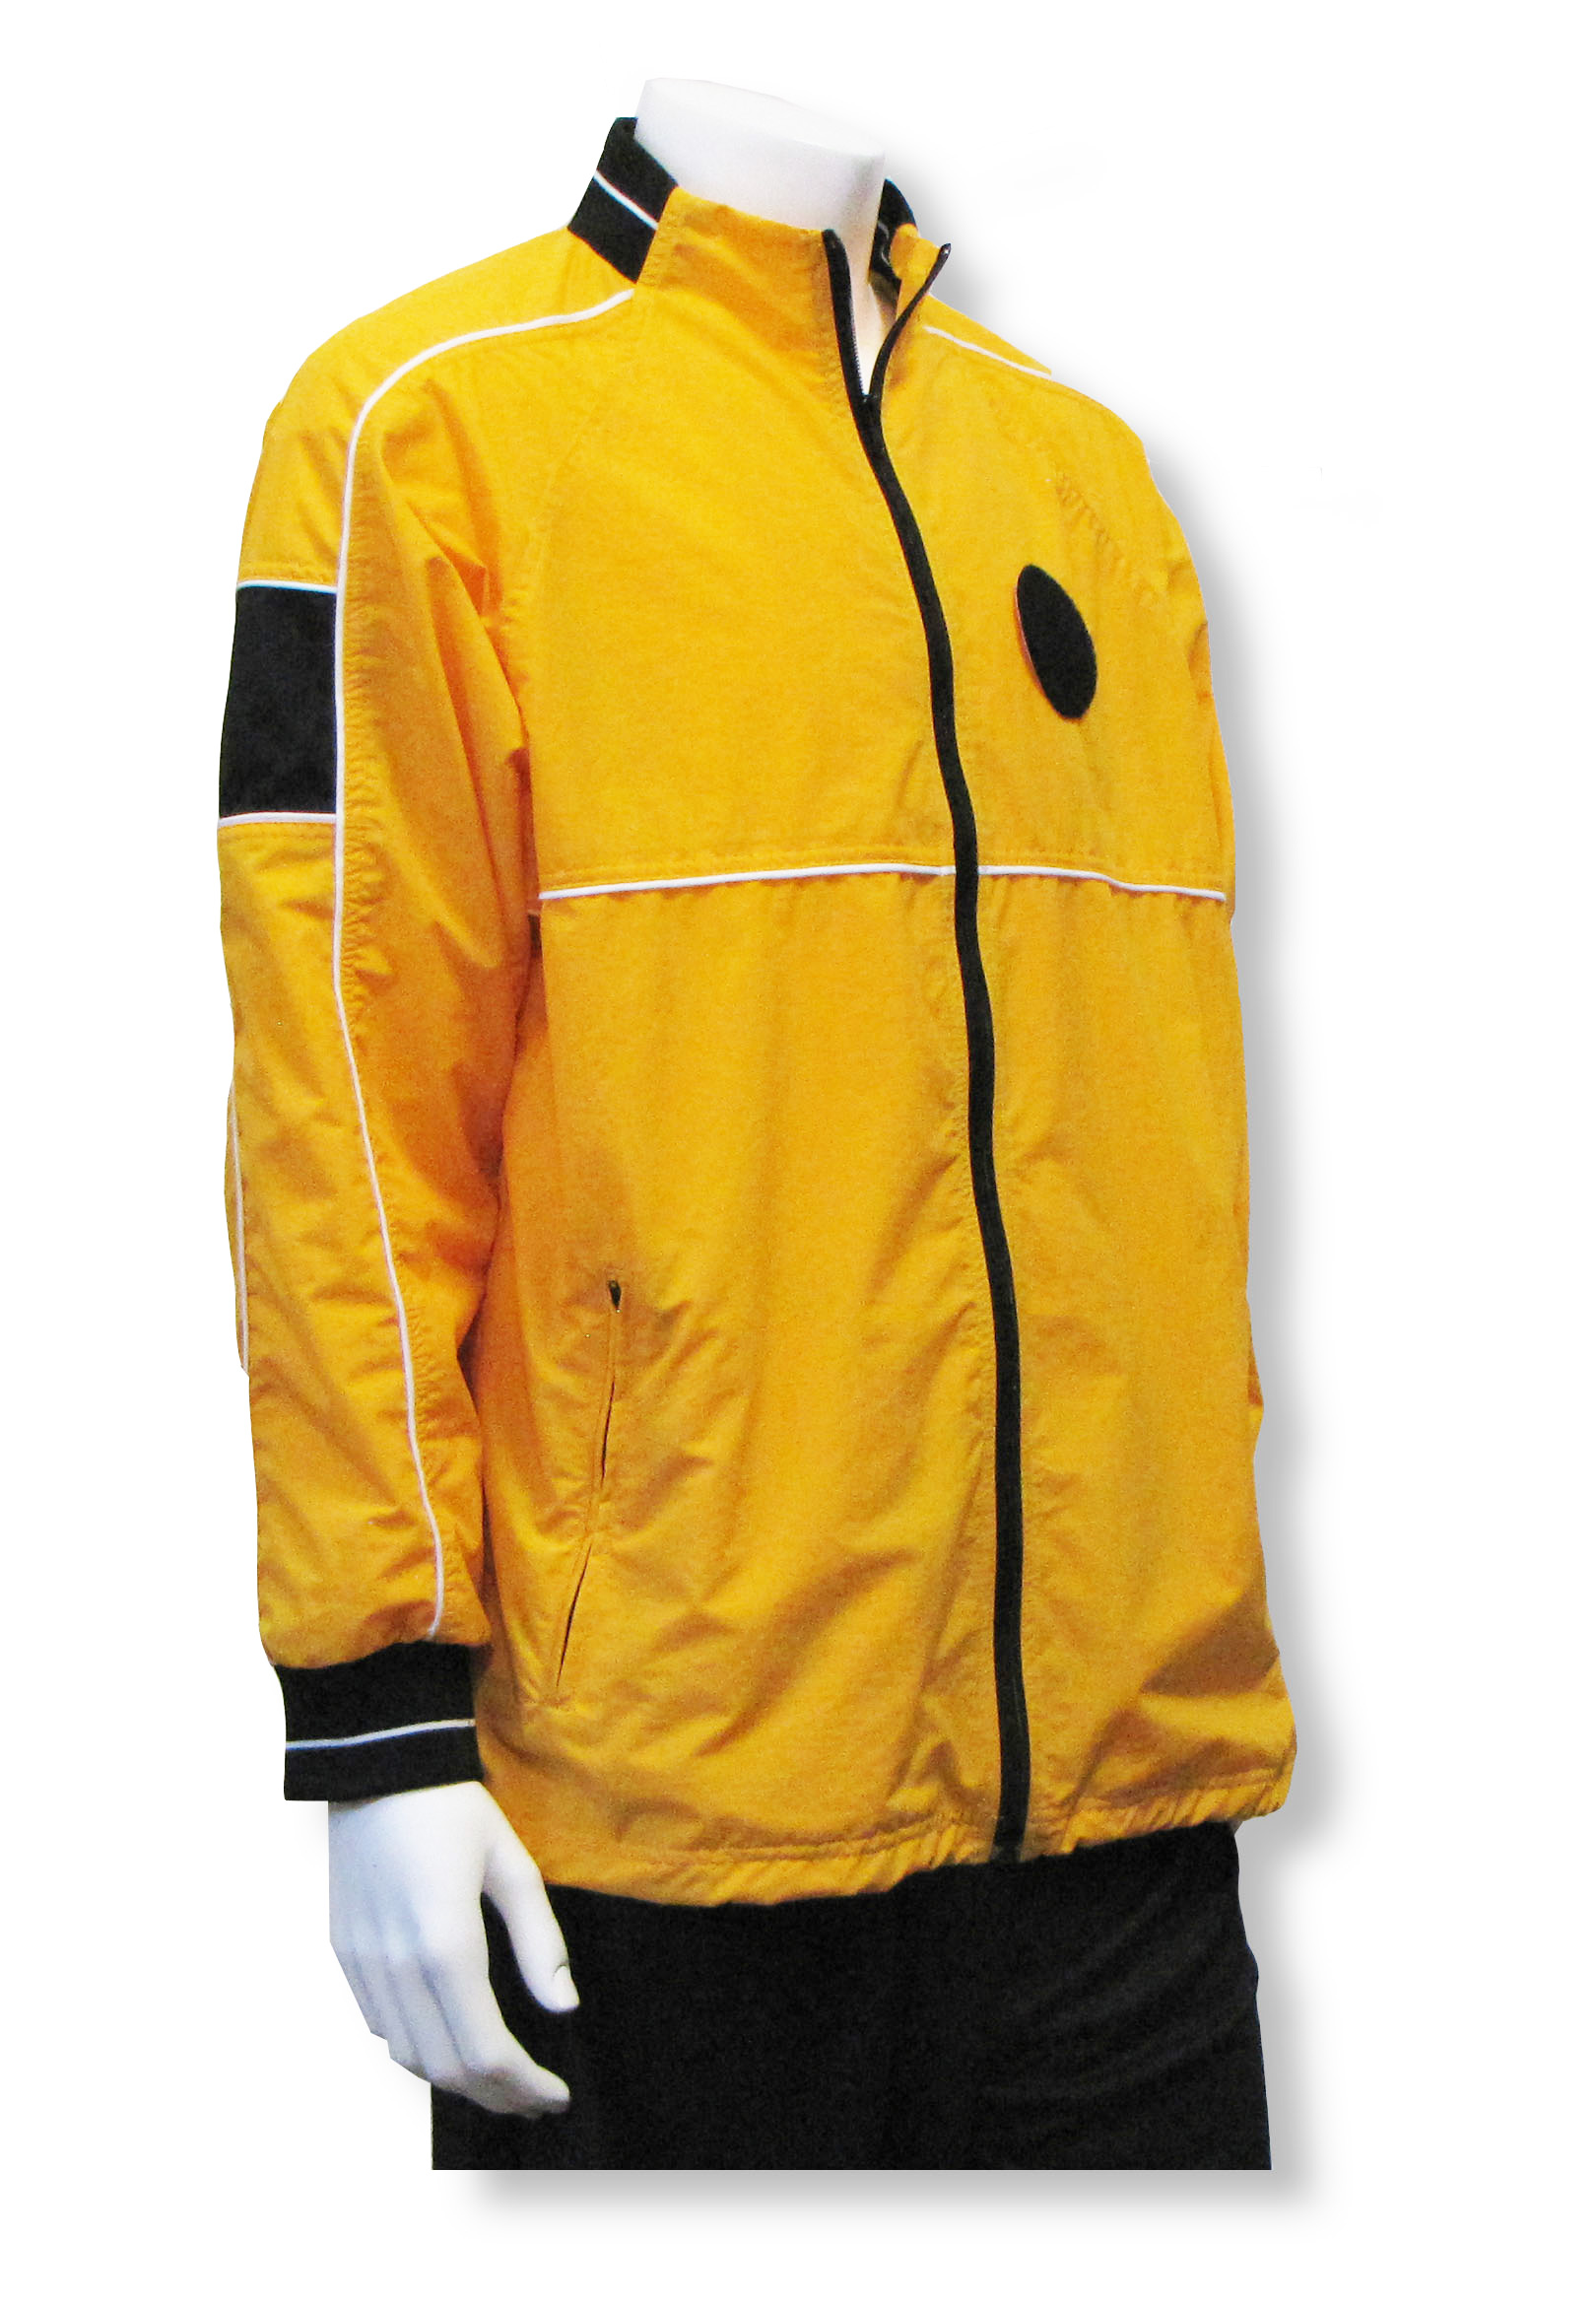 Soccer referee jacket in gold with badge holder by Code Four Athletics